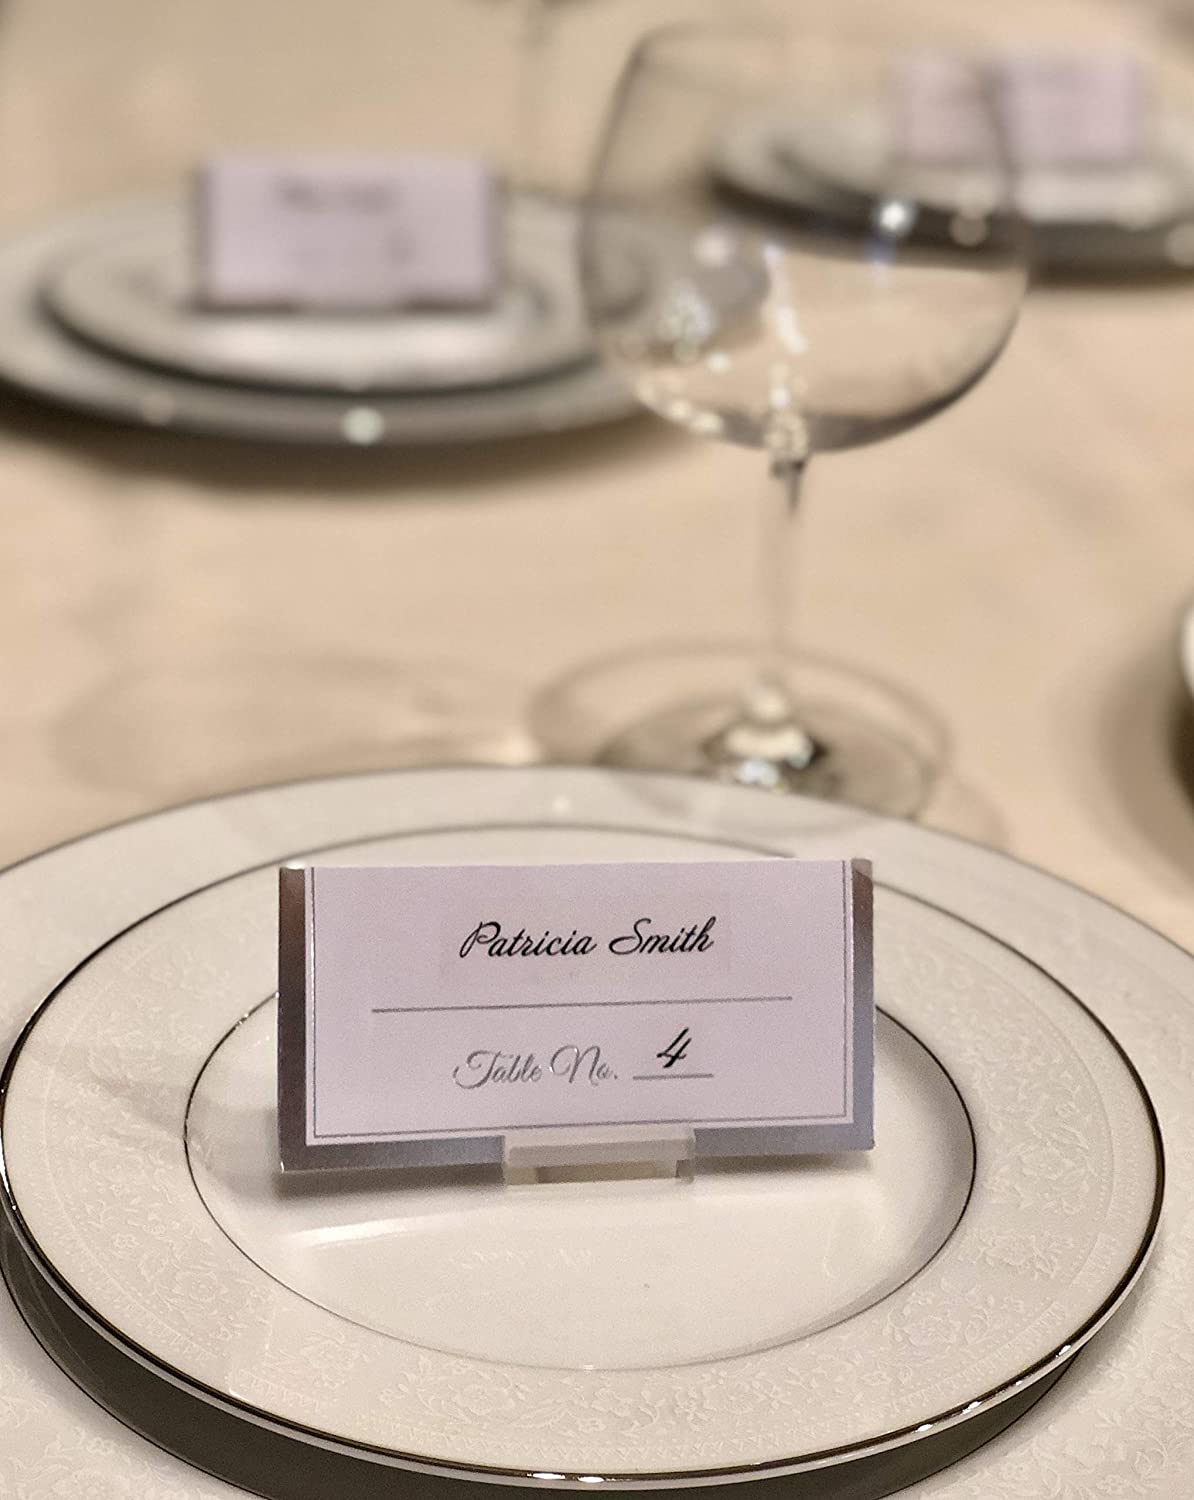 Banquet Tables Buffet Tables Mini Place Card Holder Set Acrylic Table Card Holders for Wedding Receptions 12 Pack//Set Includes Adhesive Dots for Stability and Table Numbers